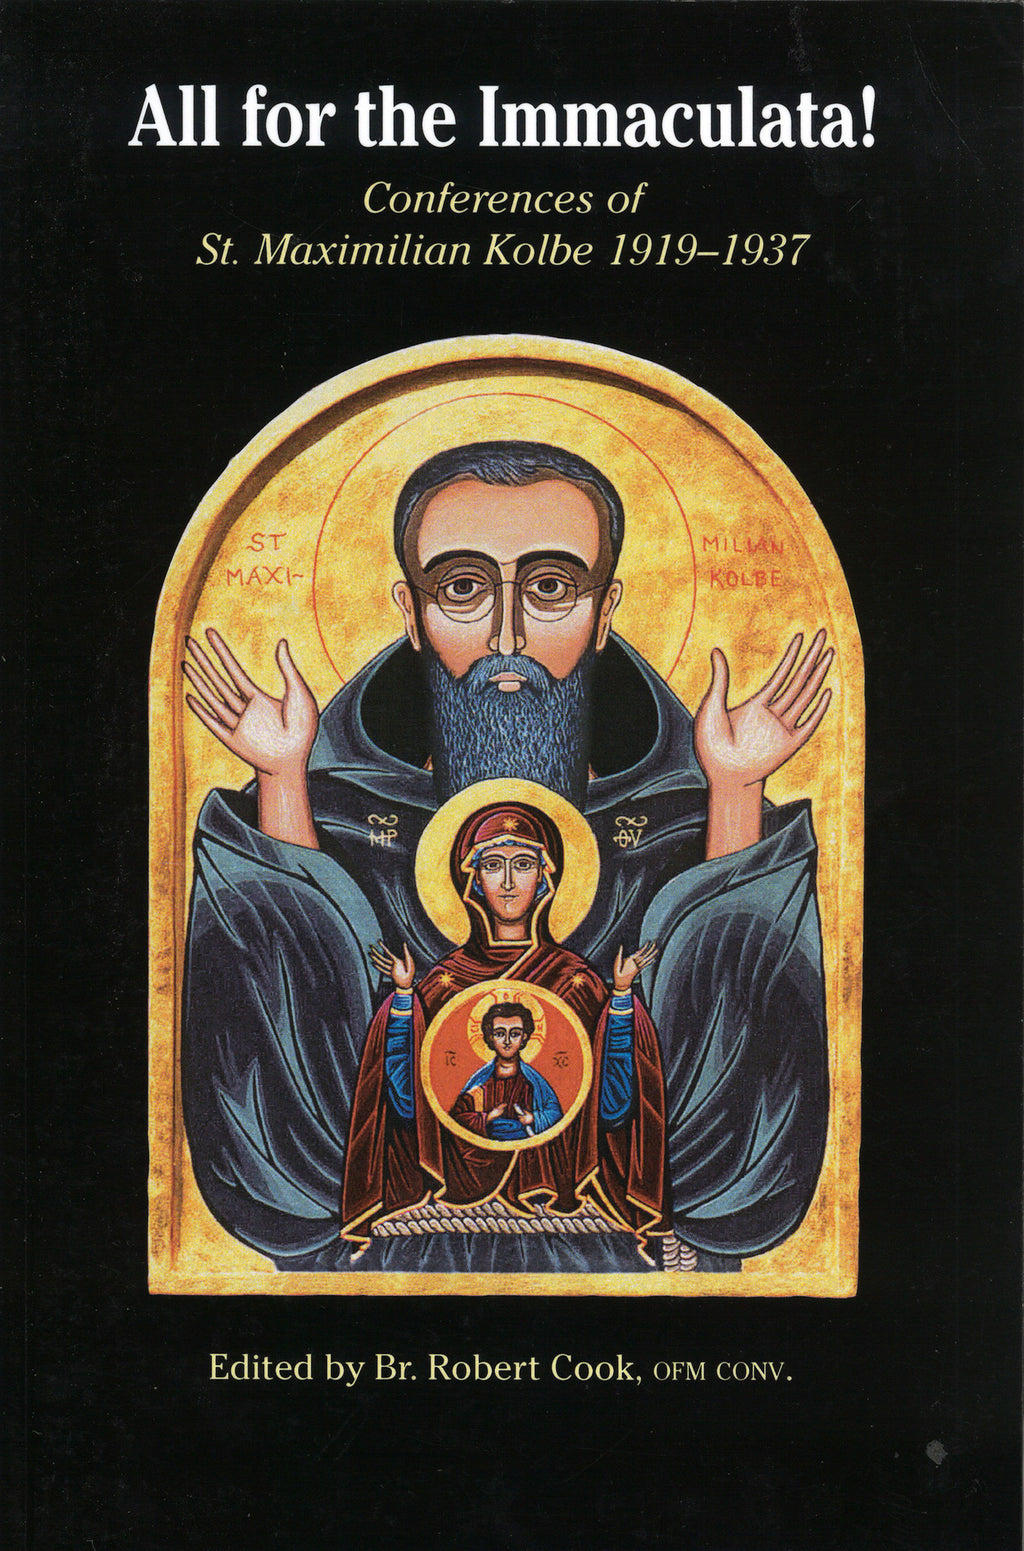 All for the Immaculata! Conferences of St. Maximilian Kolbe 1919-1937. Front cover.